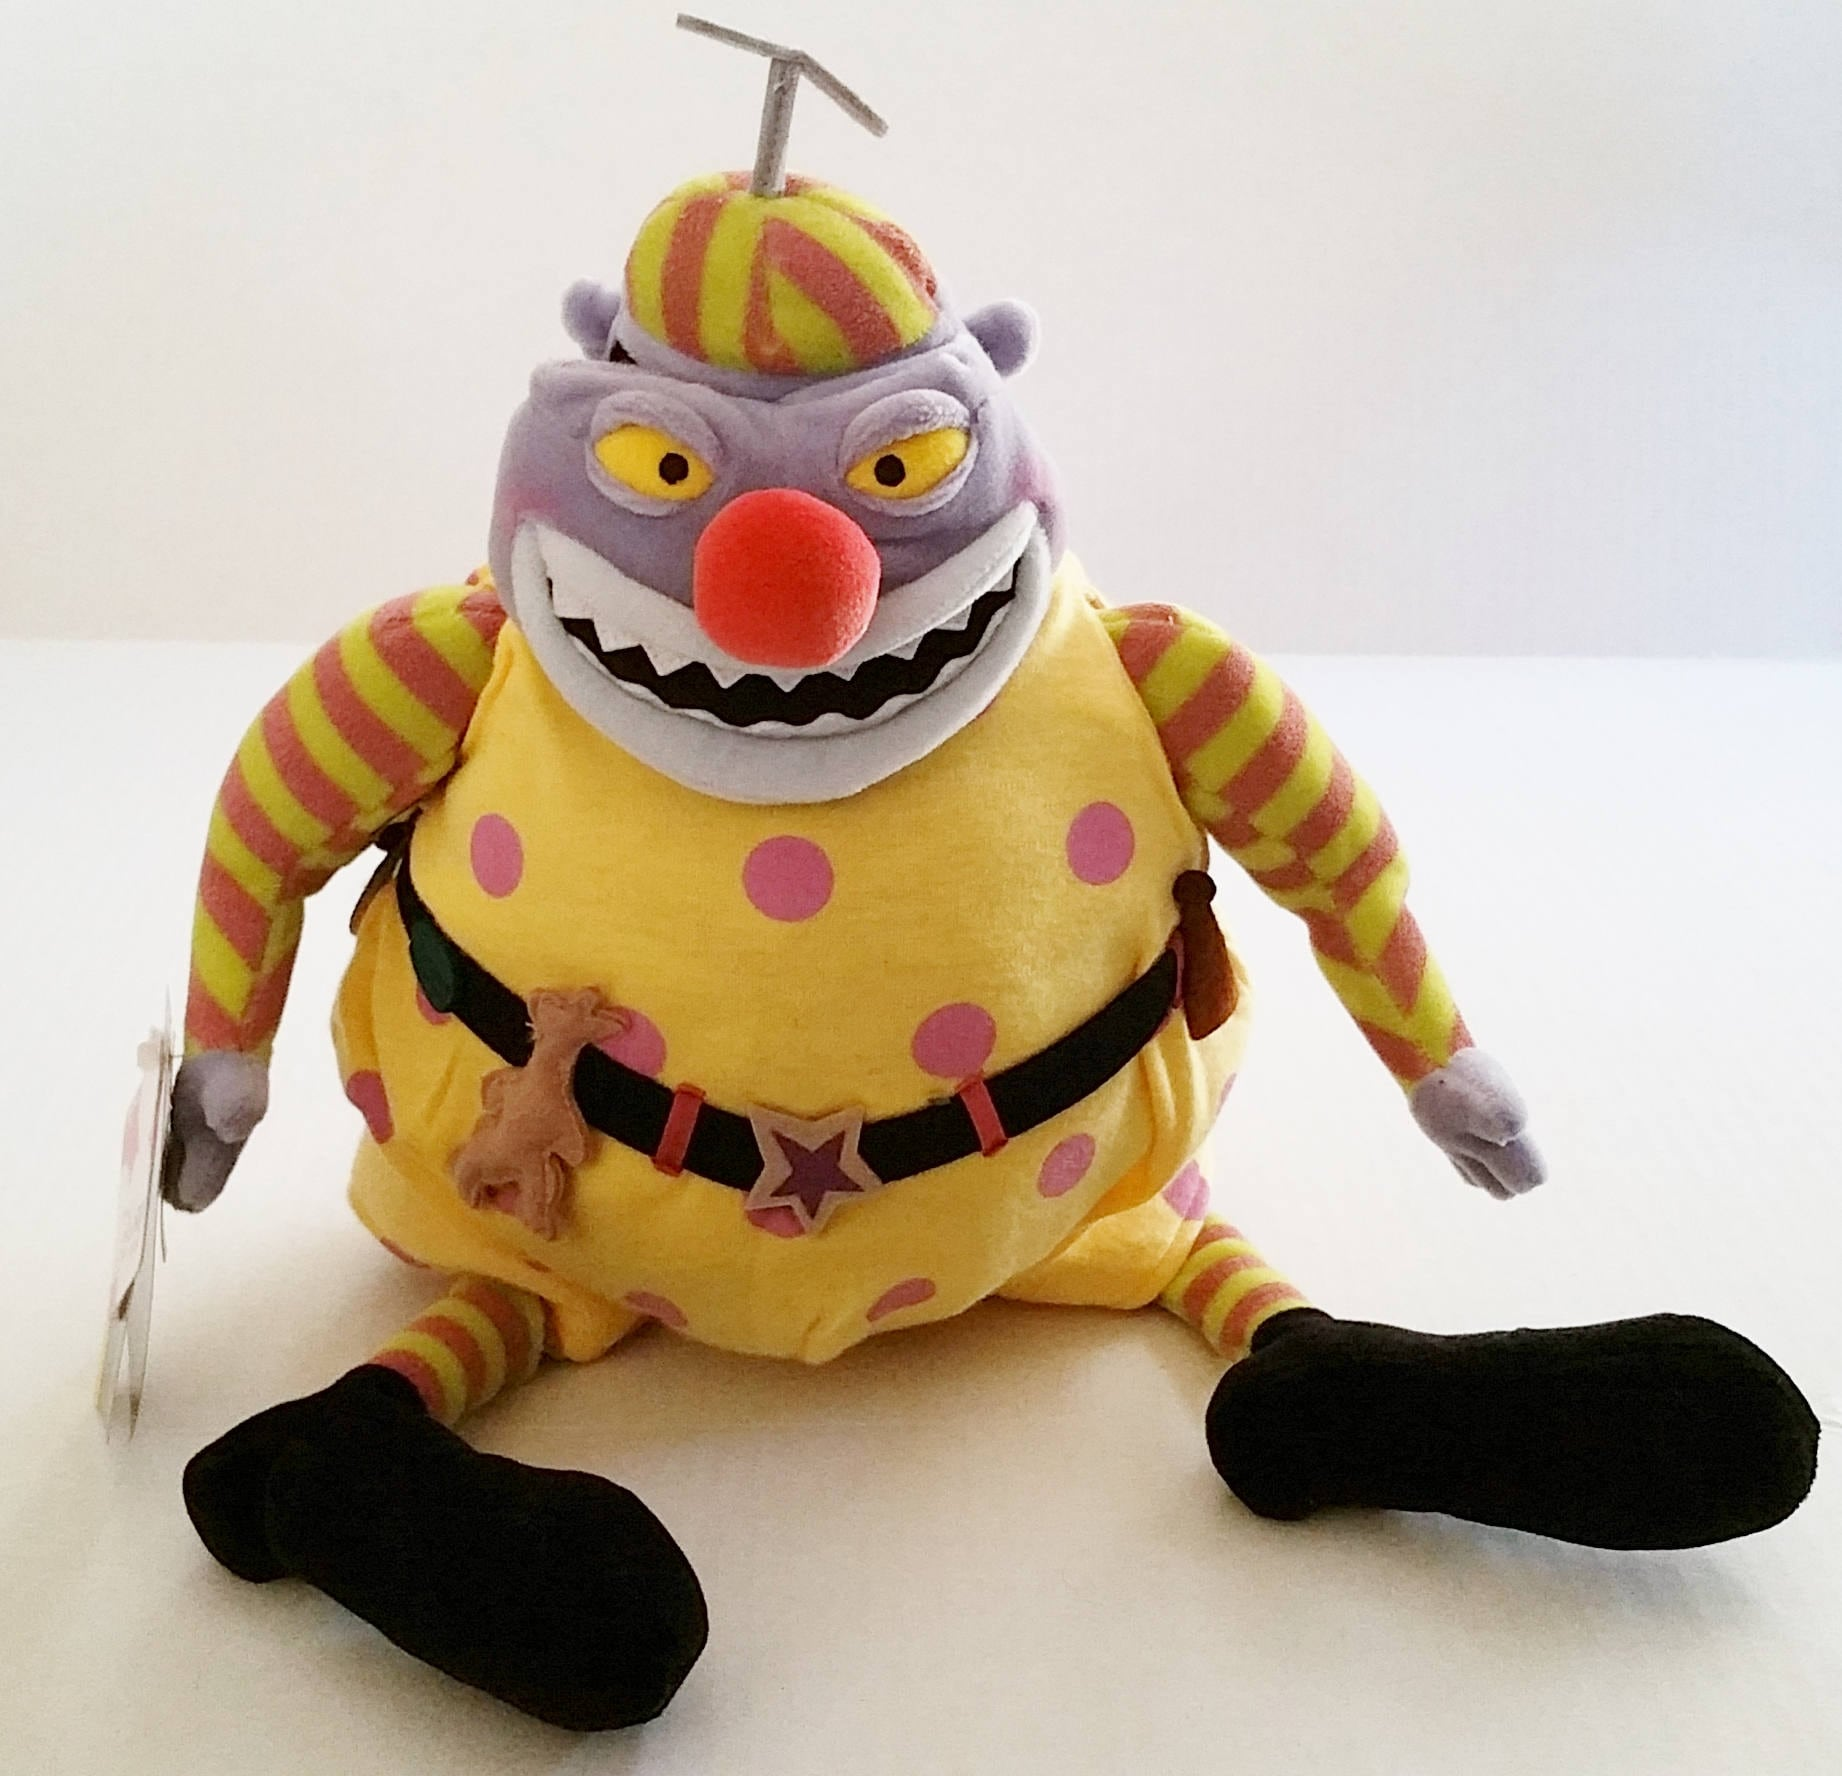 Nightmare Before Christmas Gifts Uk: NIGHTMARE BEFORE CHRISTMAS Clown Plush 1993 Rare Pull Away